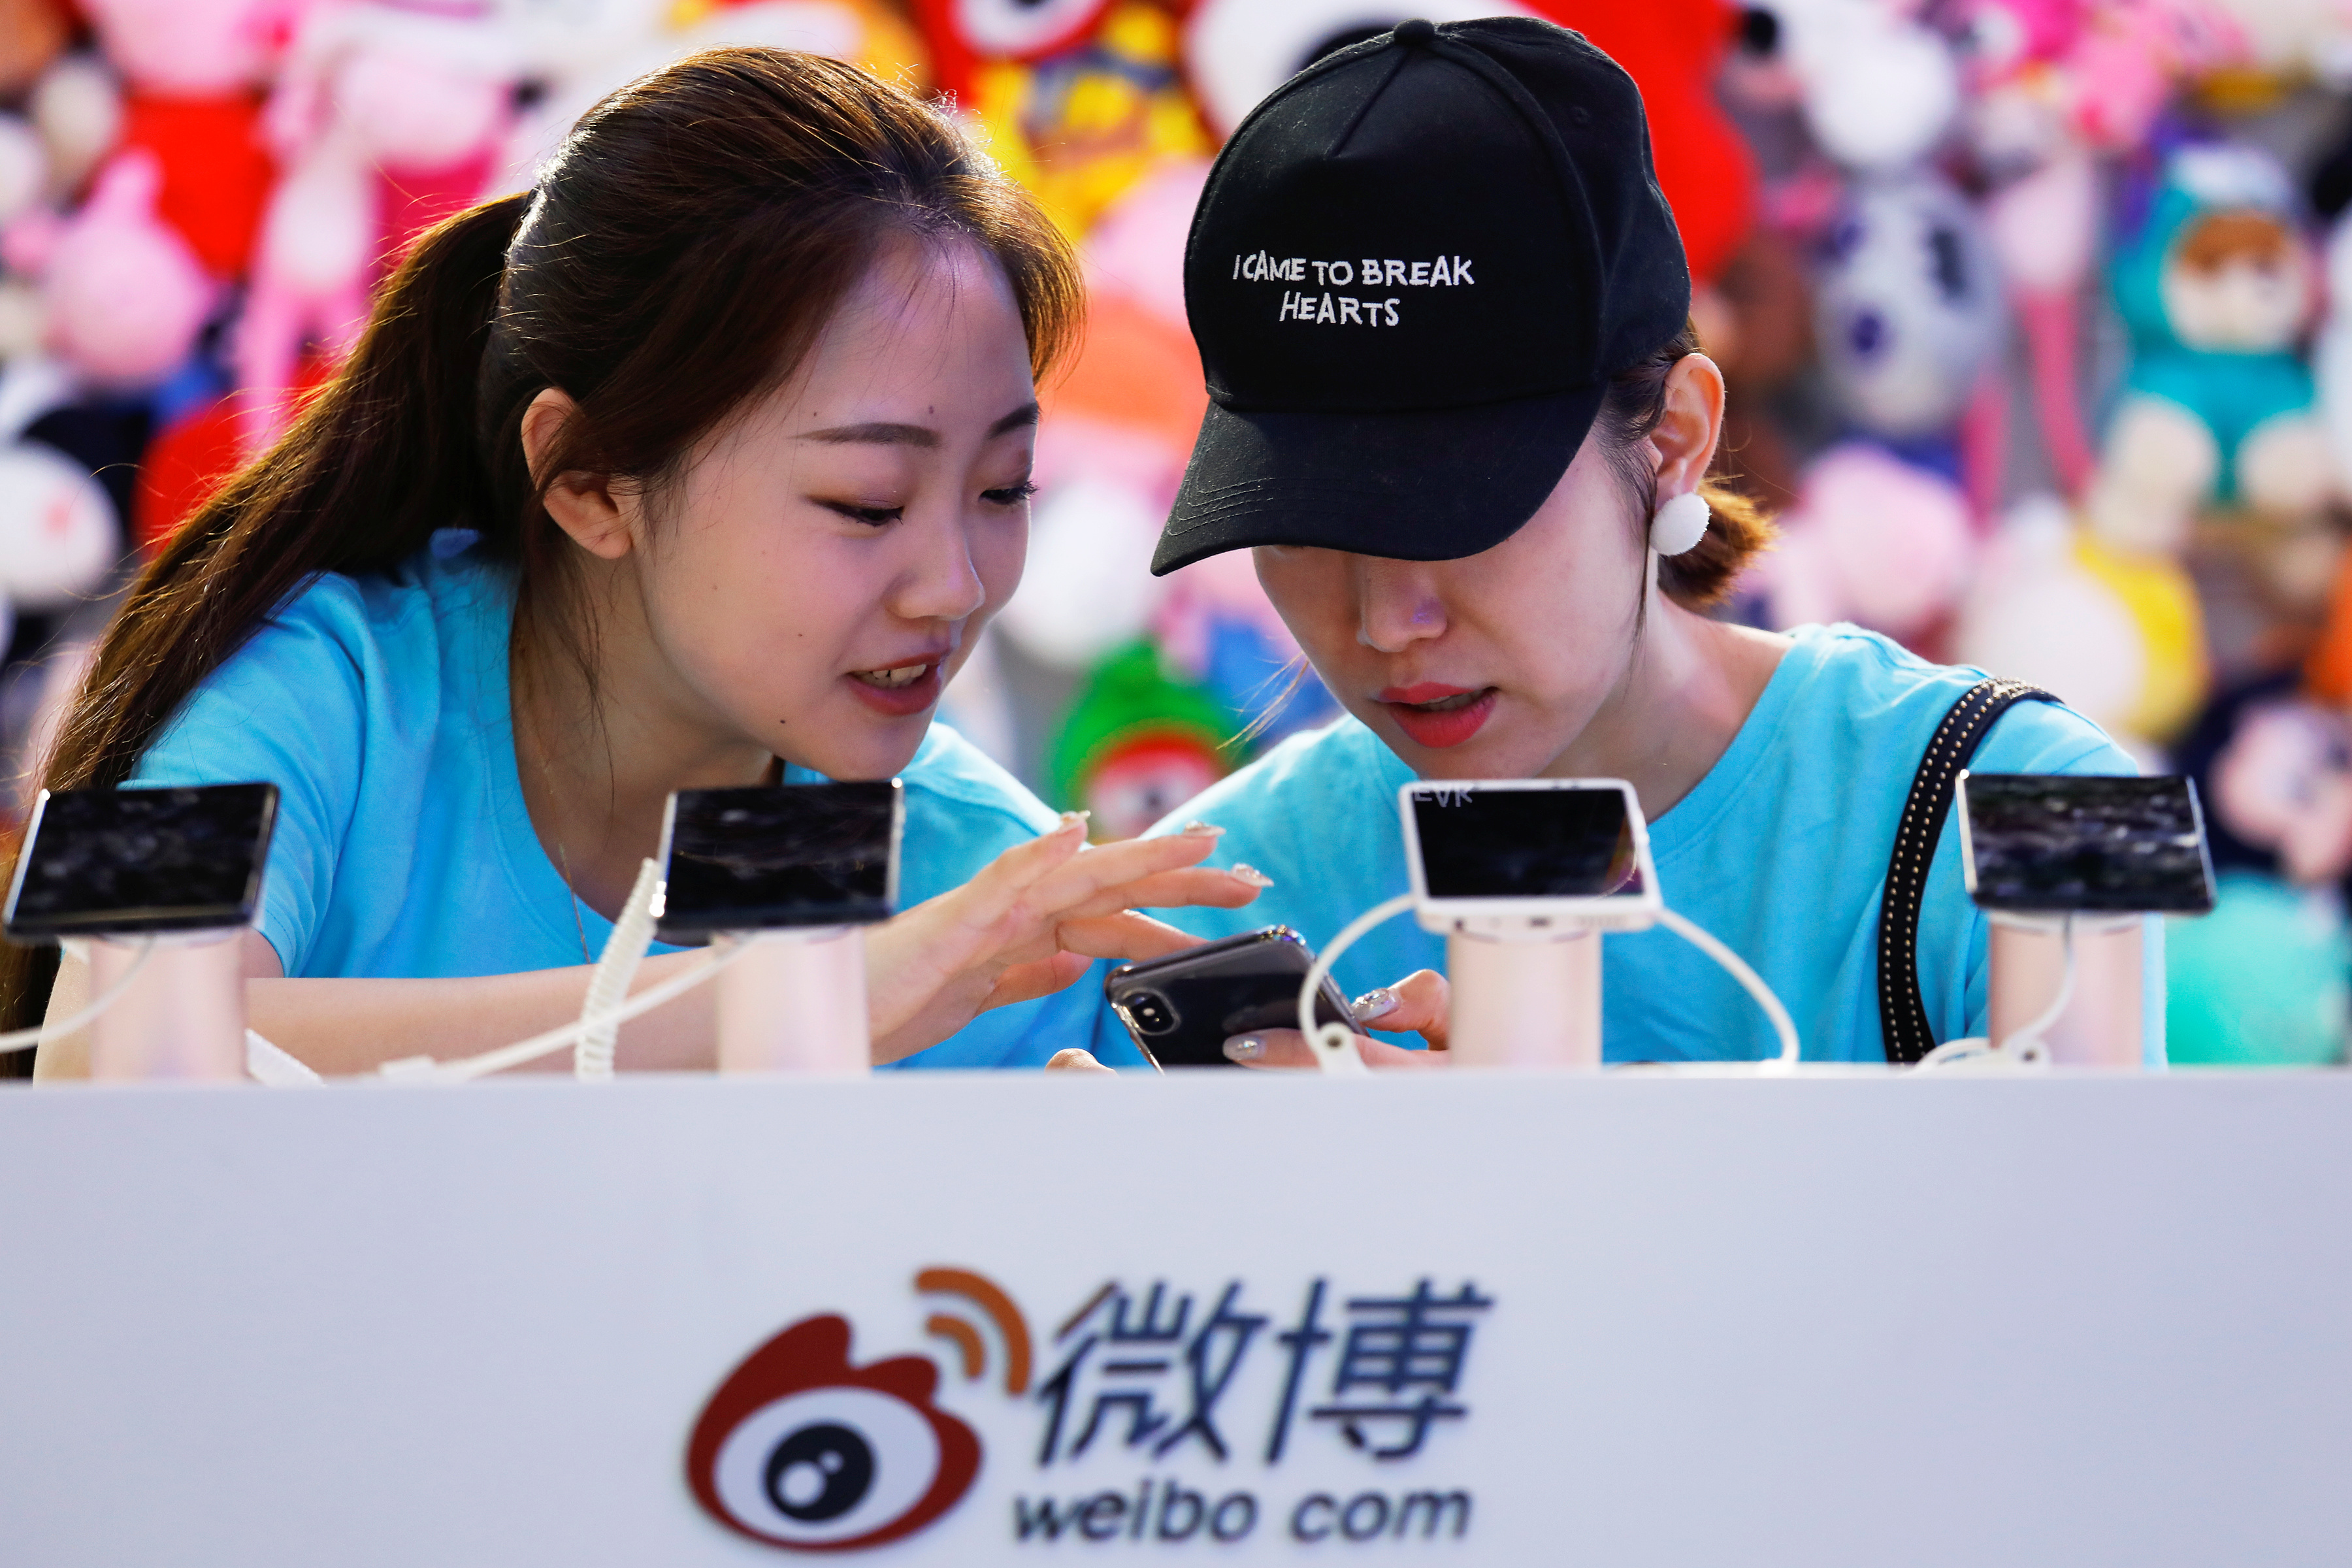 Members of staff use a smartphone at  Sina Weibo's booth during Global Mobile Internet Conference (GMIC) at the National Convention in Beijing, China April 27, 2018. REUTERS/Damir Sagolj - RC14E832BBF0